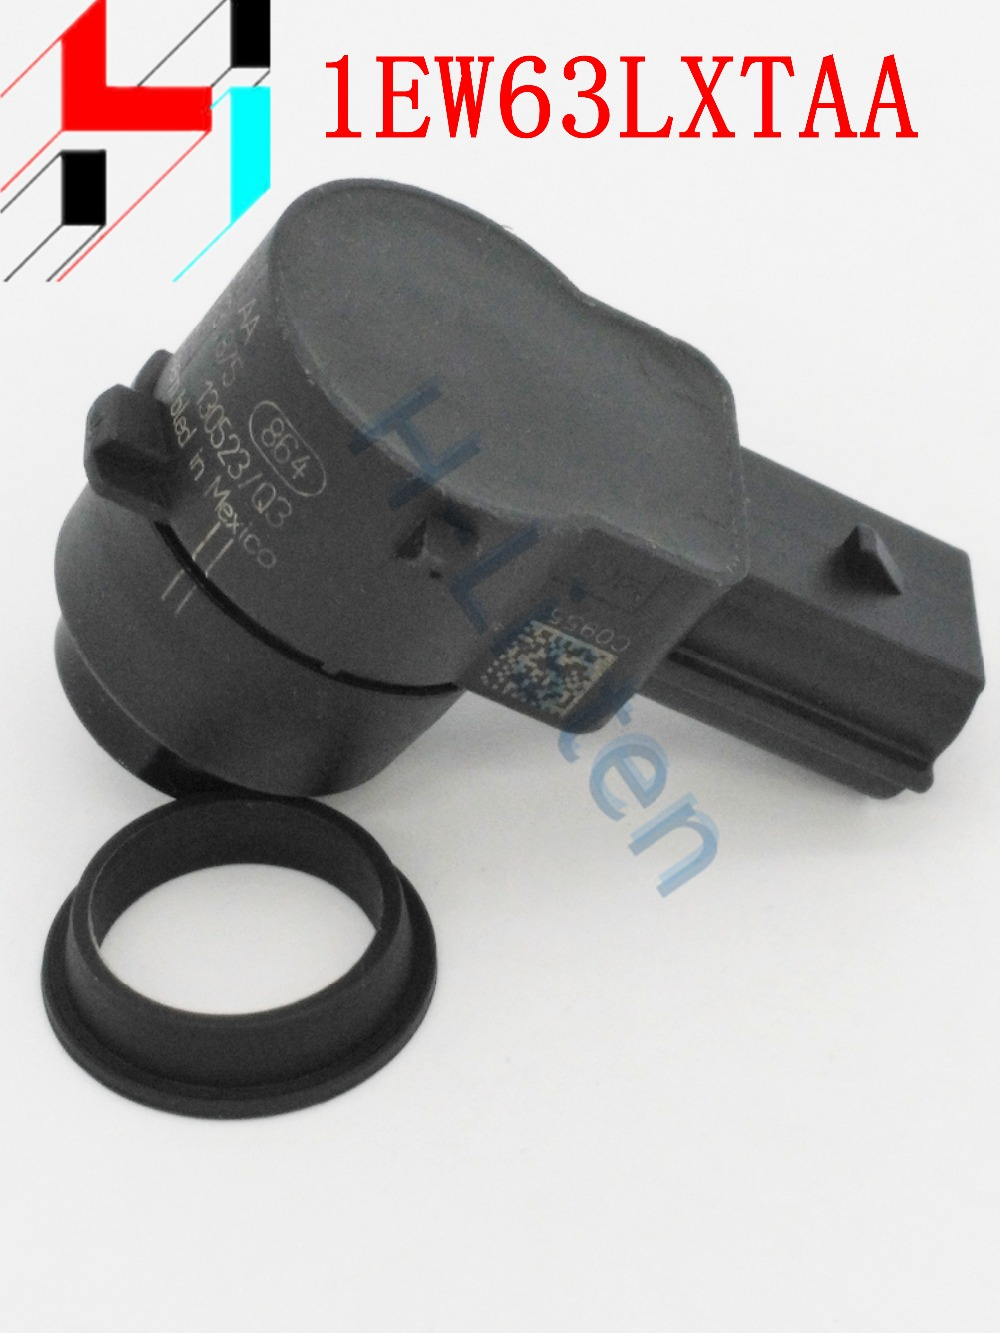 [해외]1EW63LAUAA 0263013874 주차 센서 거리 제어 센서 차량 감지기/1EW63LAUAA 0263013874 Parking Sensor Distance Control Sensor Car Detector